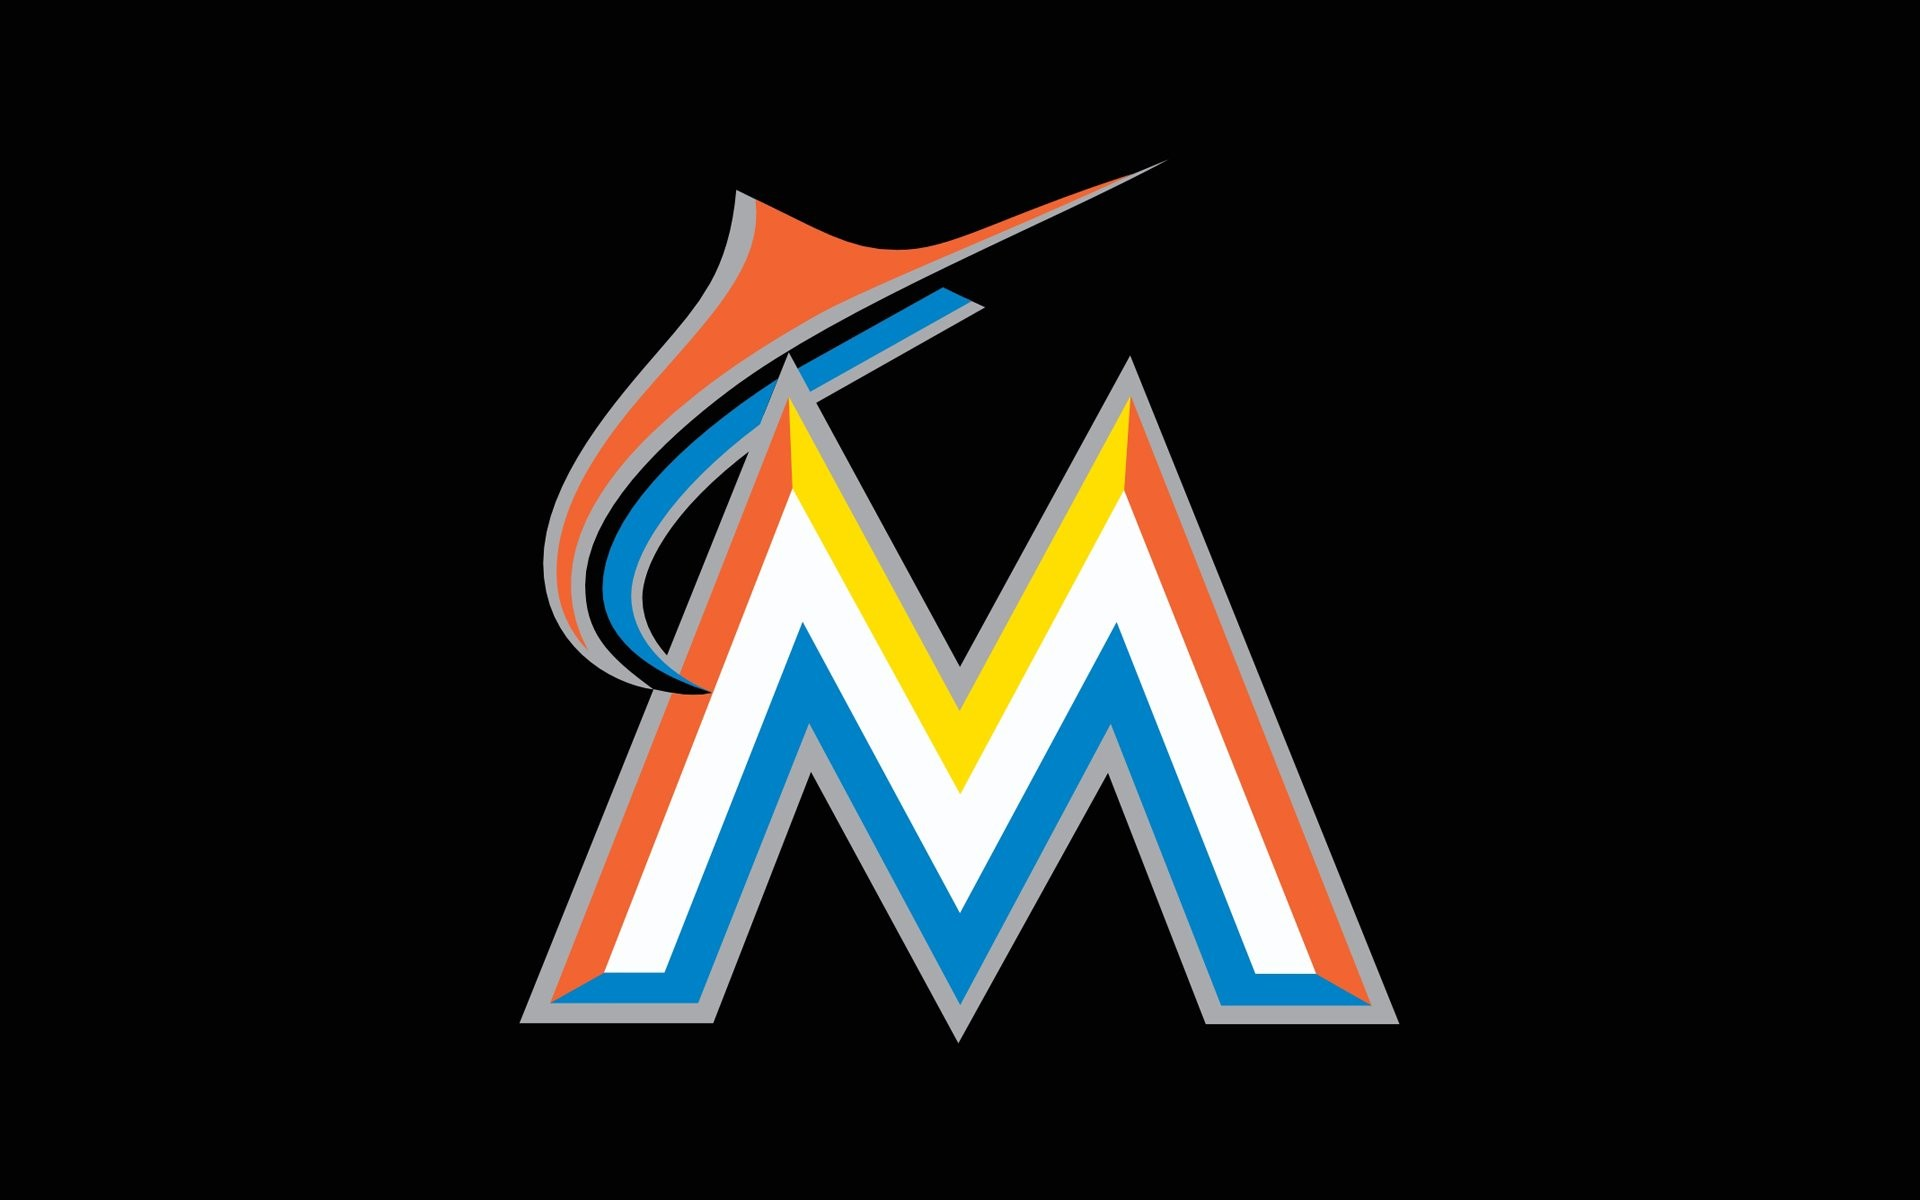 1920x1200 Wallpaper Marlins Miami Shows Wallpapers Walls